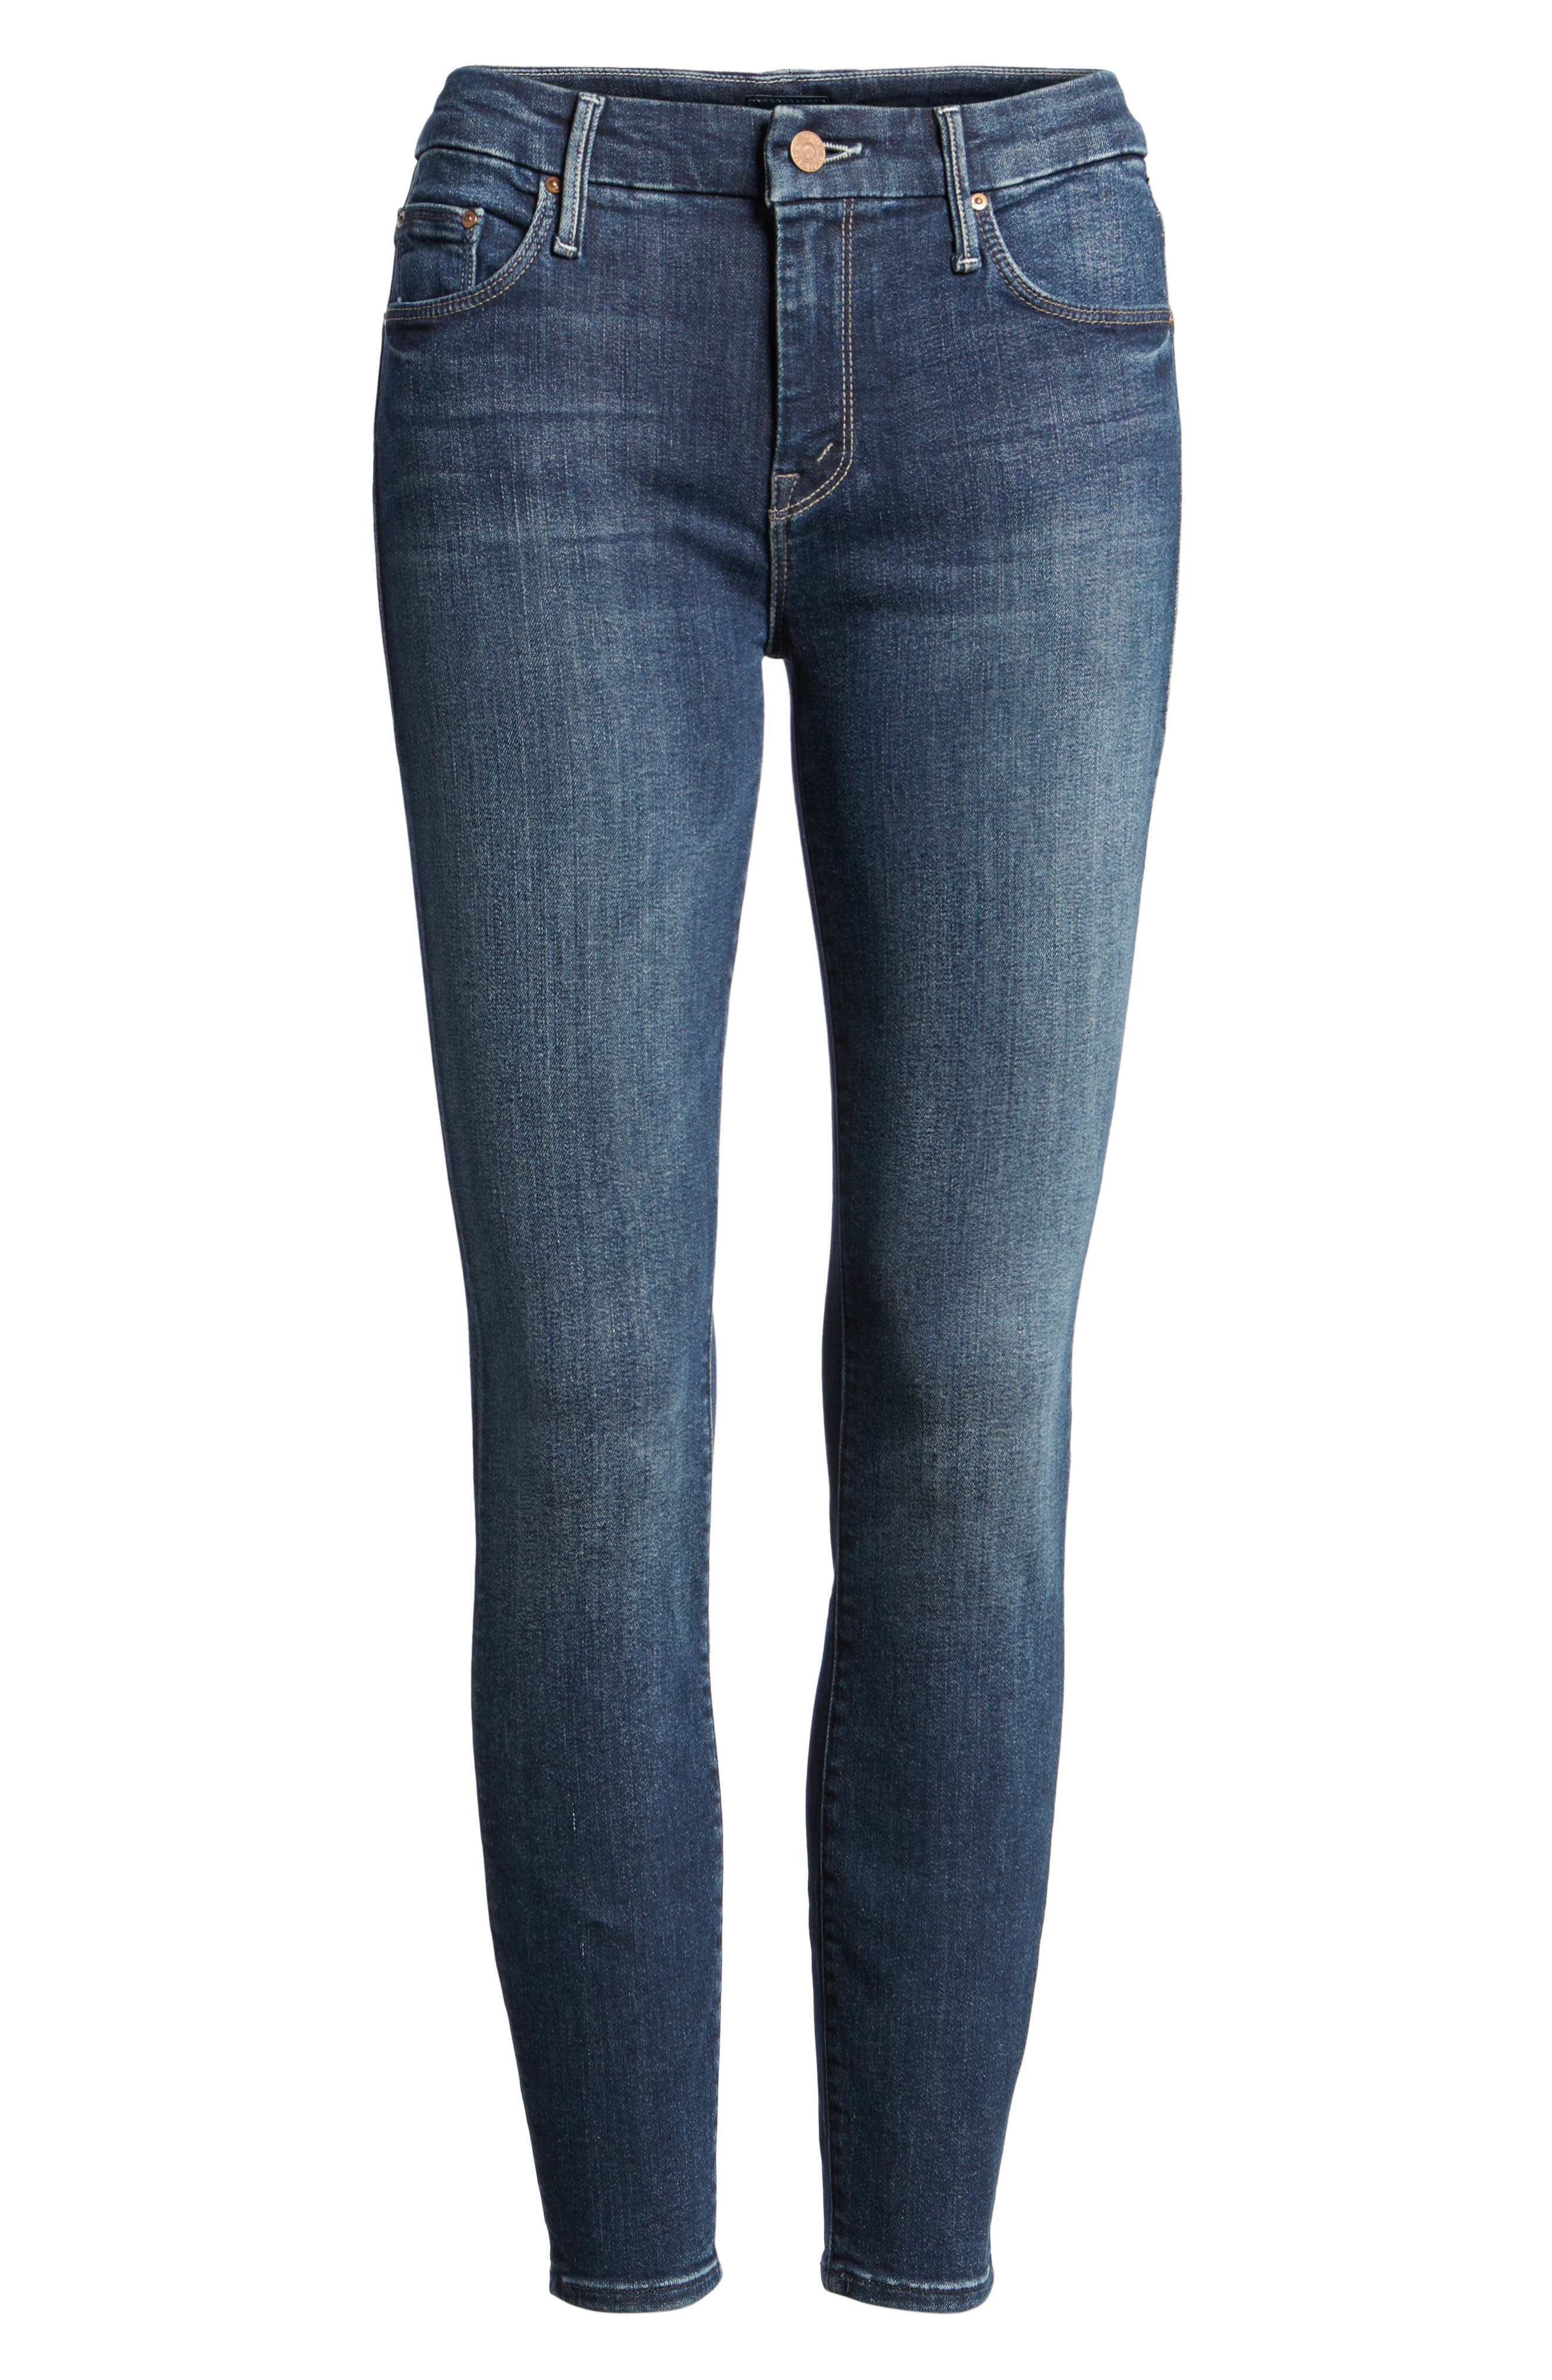 'The Looker' Crop Skinny Jeans,                             Alternate thumbnail 2, color,                             439